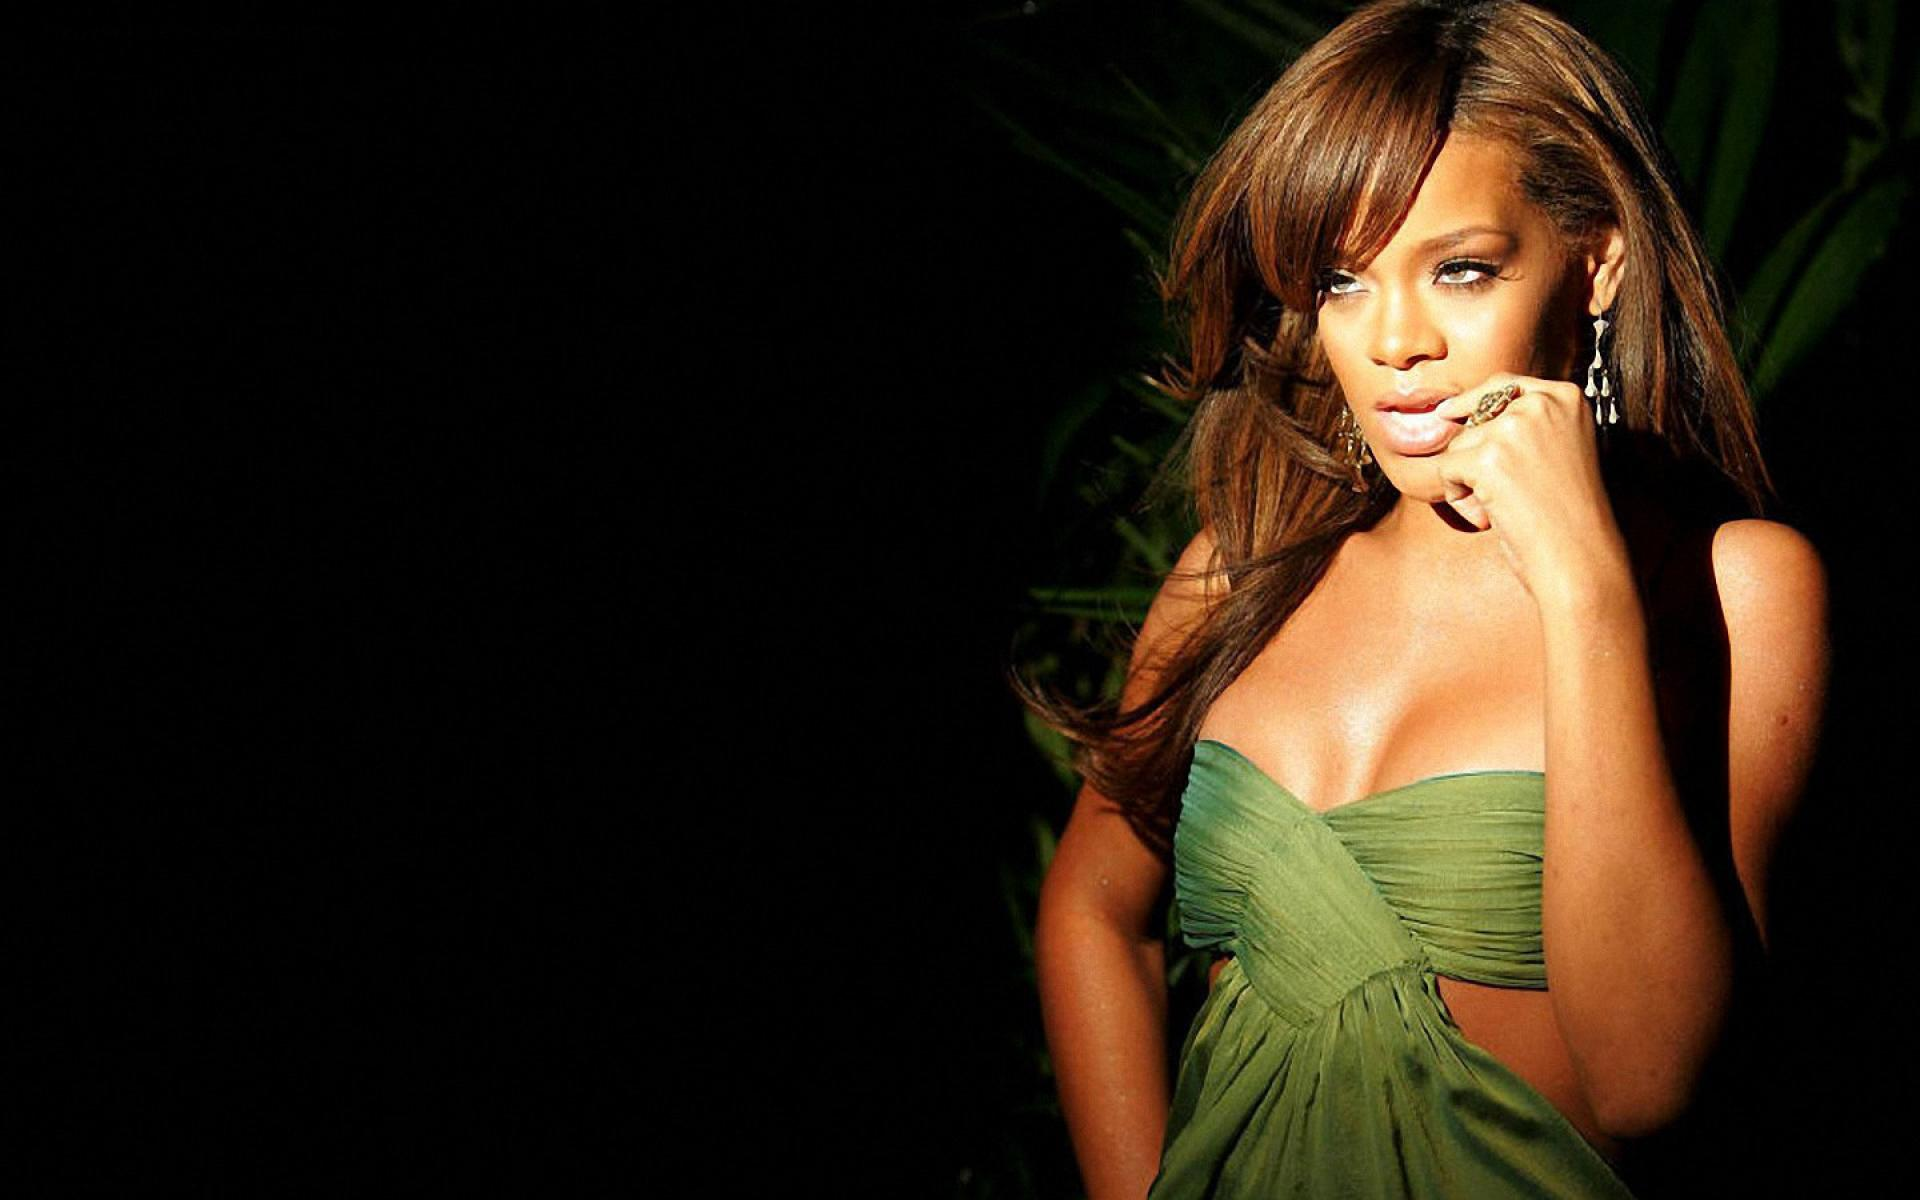 rihanna wallpapers | hd wallpapers